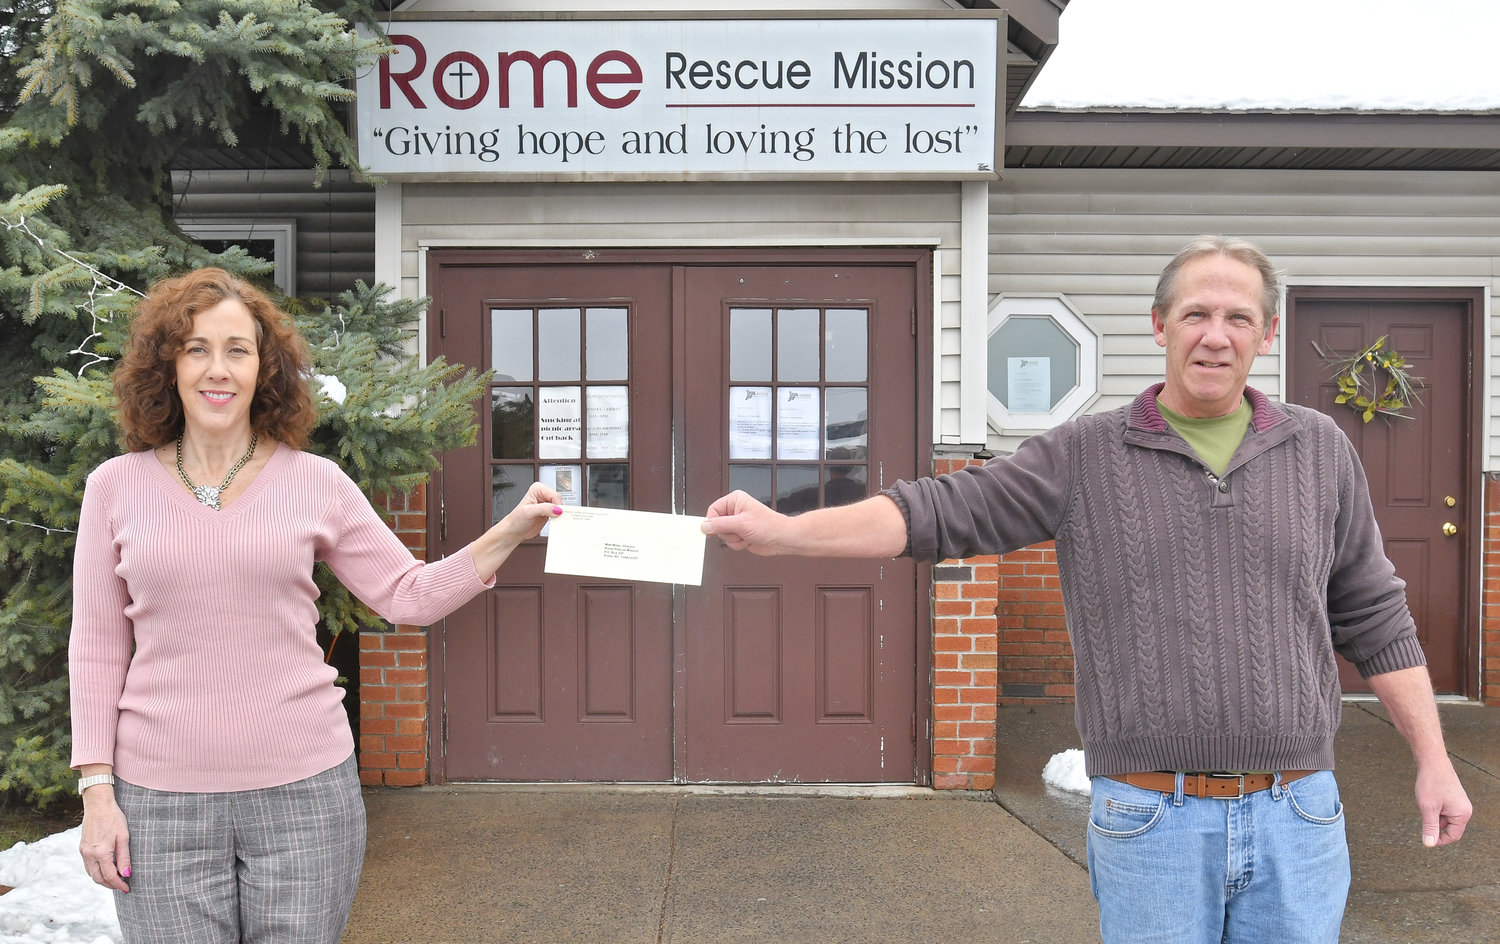 PASS IT ON — Dyann Nashton, of the Griffin Charitable Foundations, passes a check to Matt Miller, executive director of the Rome Rescue Mission on Tuesday afternoon. The foundations are calling on members of the community to help agencies, such as the Rome Rescue Mission, which are stretched to the limit trying to help the growing numbers of those in need in the community by also making monetary donations or helping serve others by volunteering.